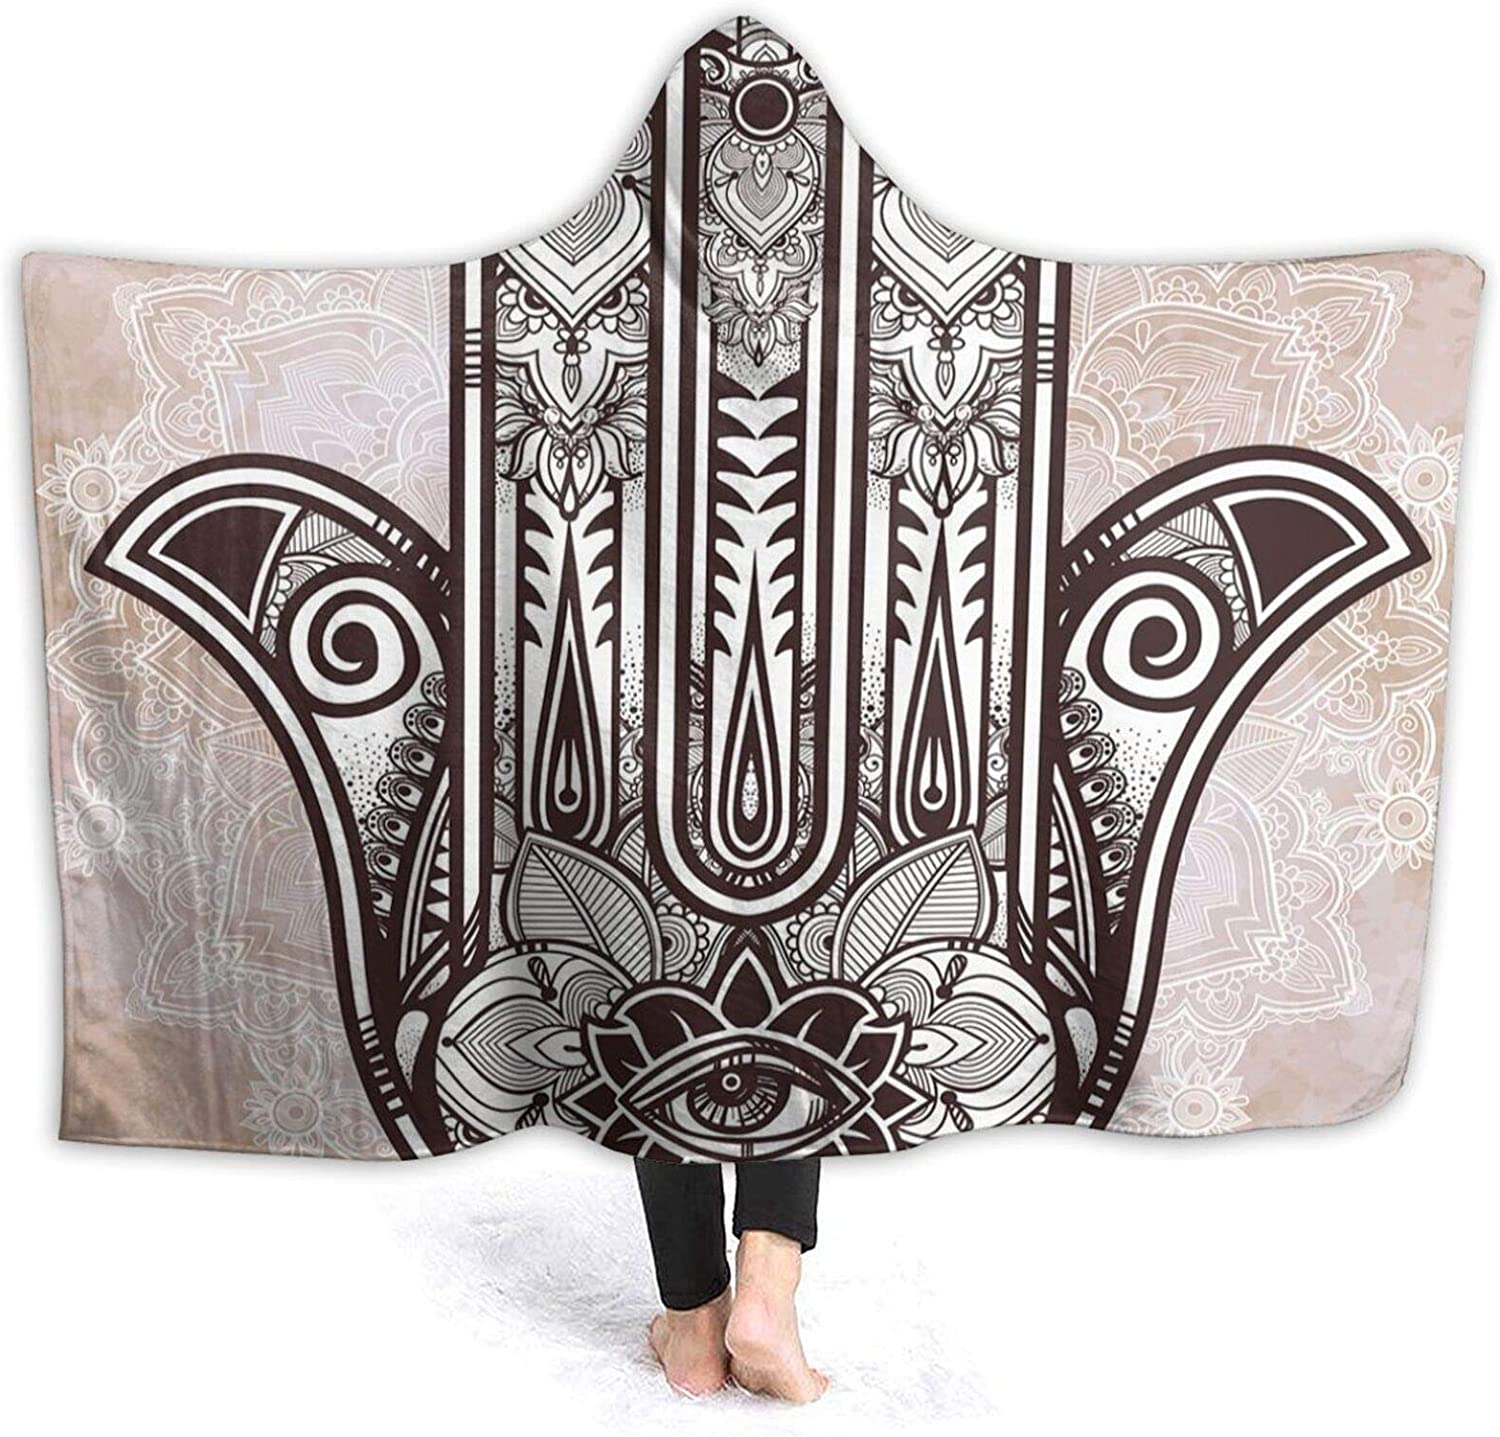 Hooded Blanket Free shipping New Anti-Pilling Flannel Esoter Asian Culture Selling and selling Eastern